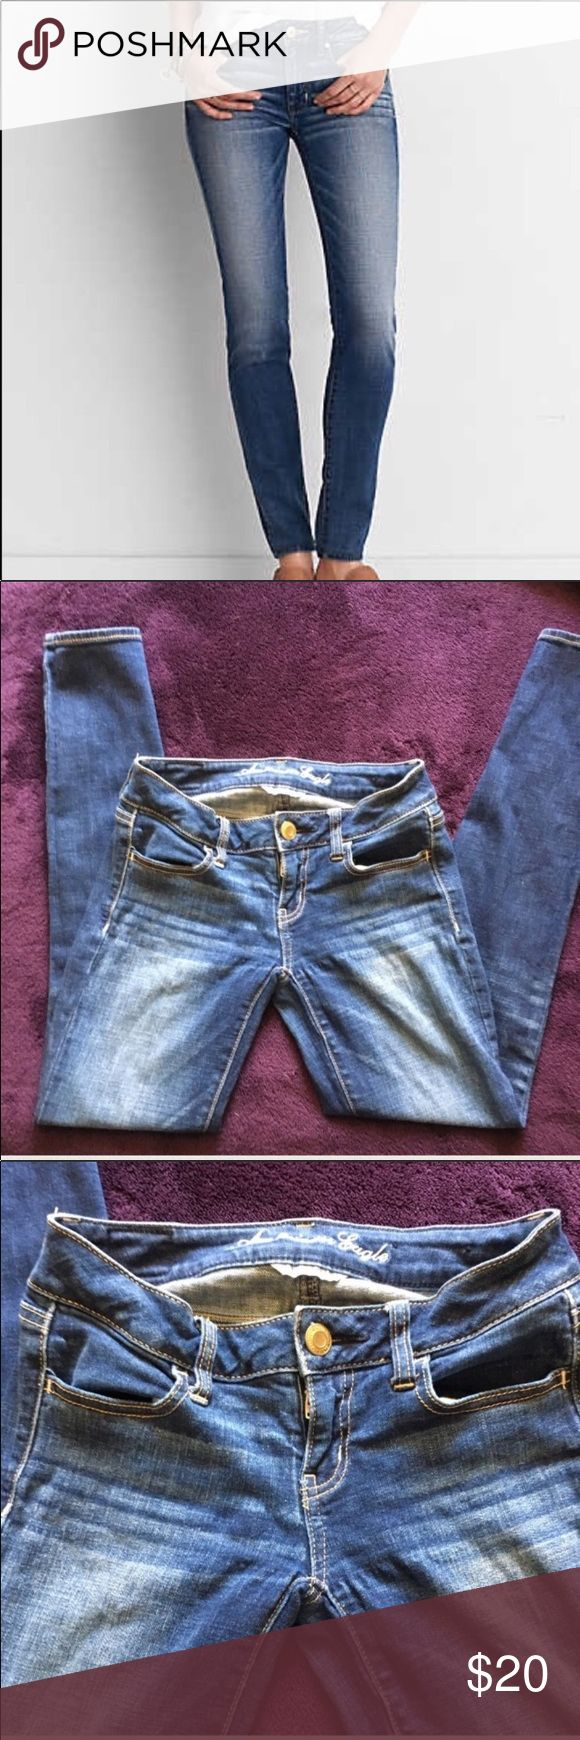 American Eagle Outfitters Super Stretch Jeans American Eagle Outfitters Super Stretch Skinny Jeans American Eagle Outfitters Jeans